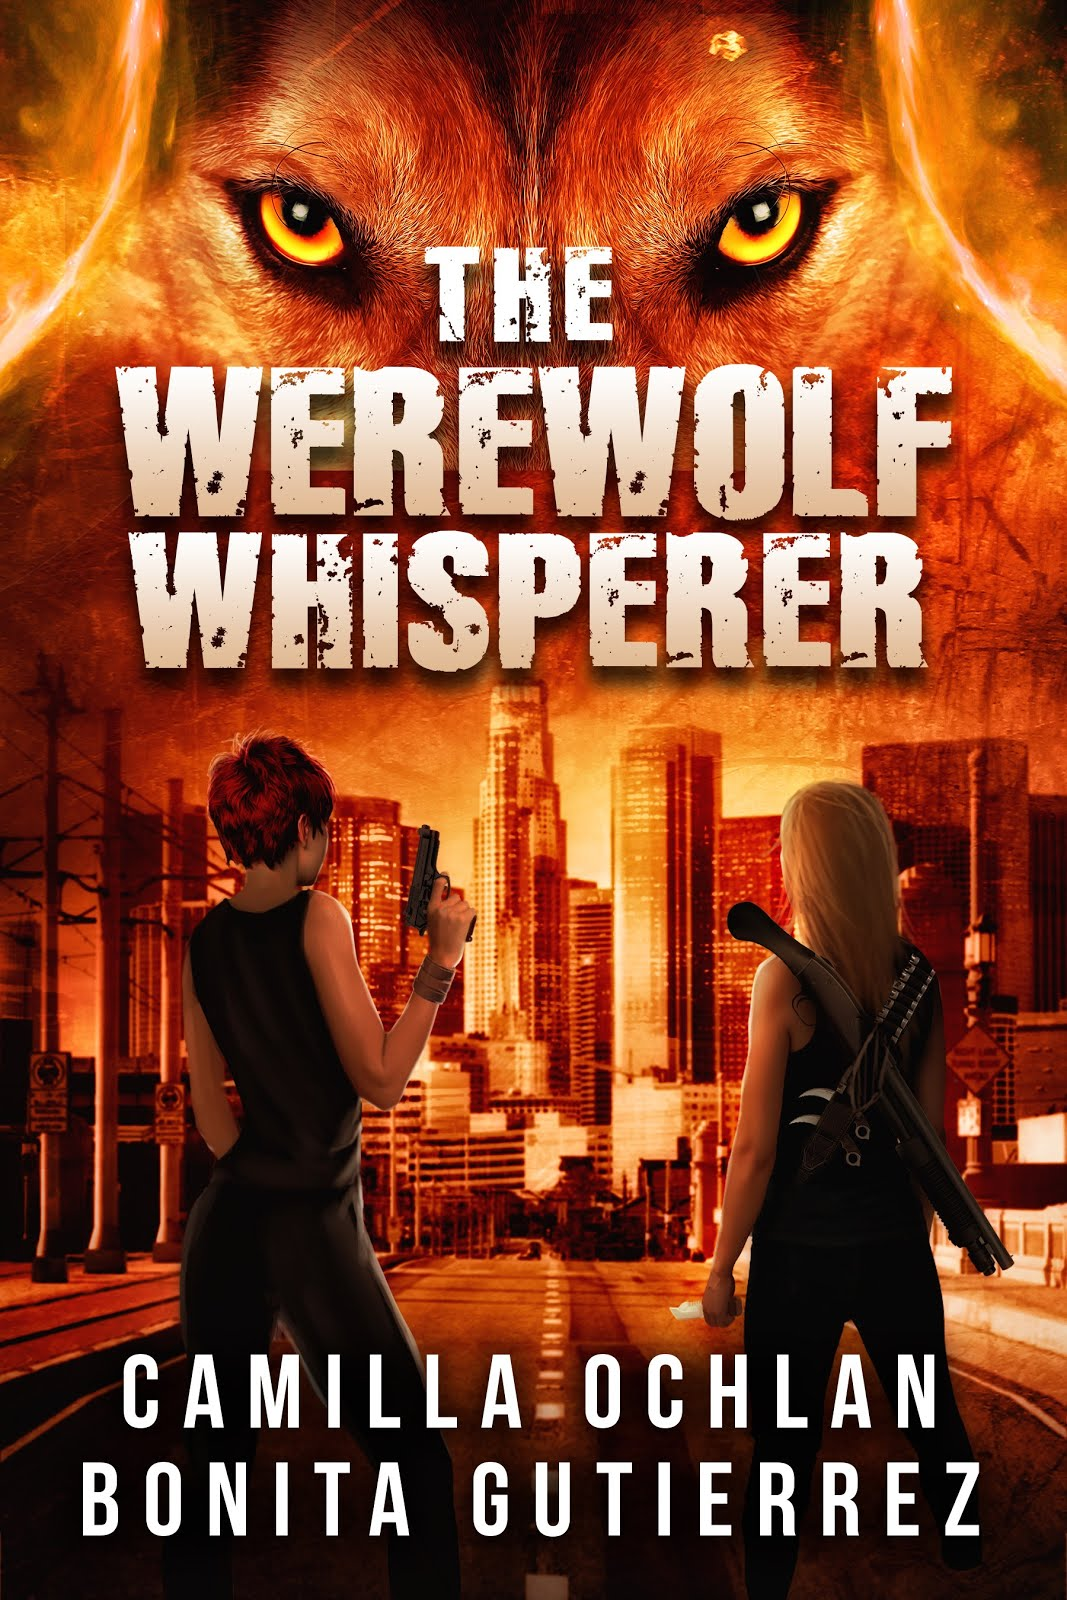 Not Your Grandma's Werewolf Tale!